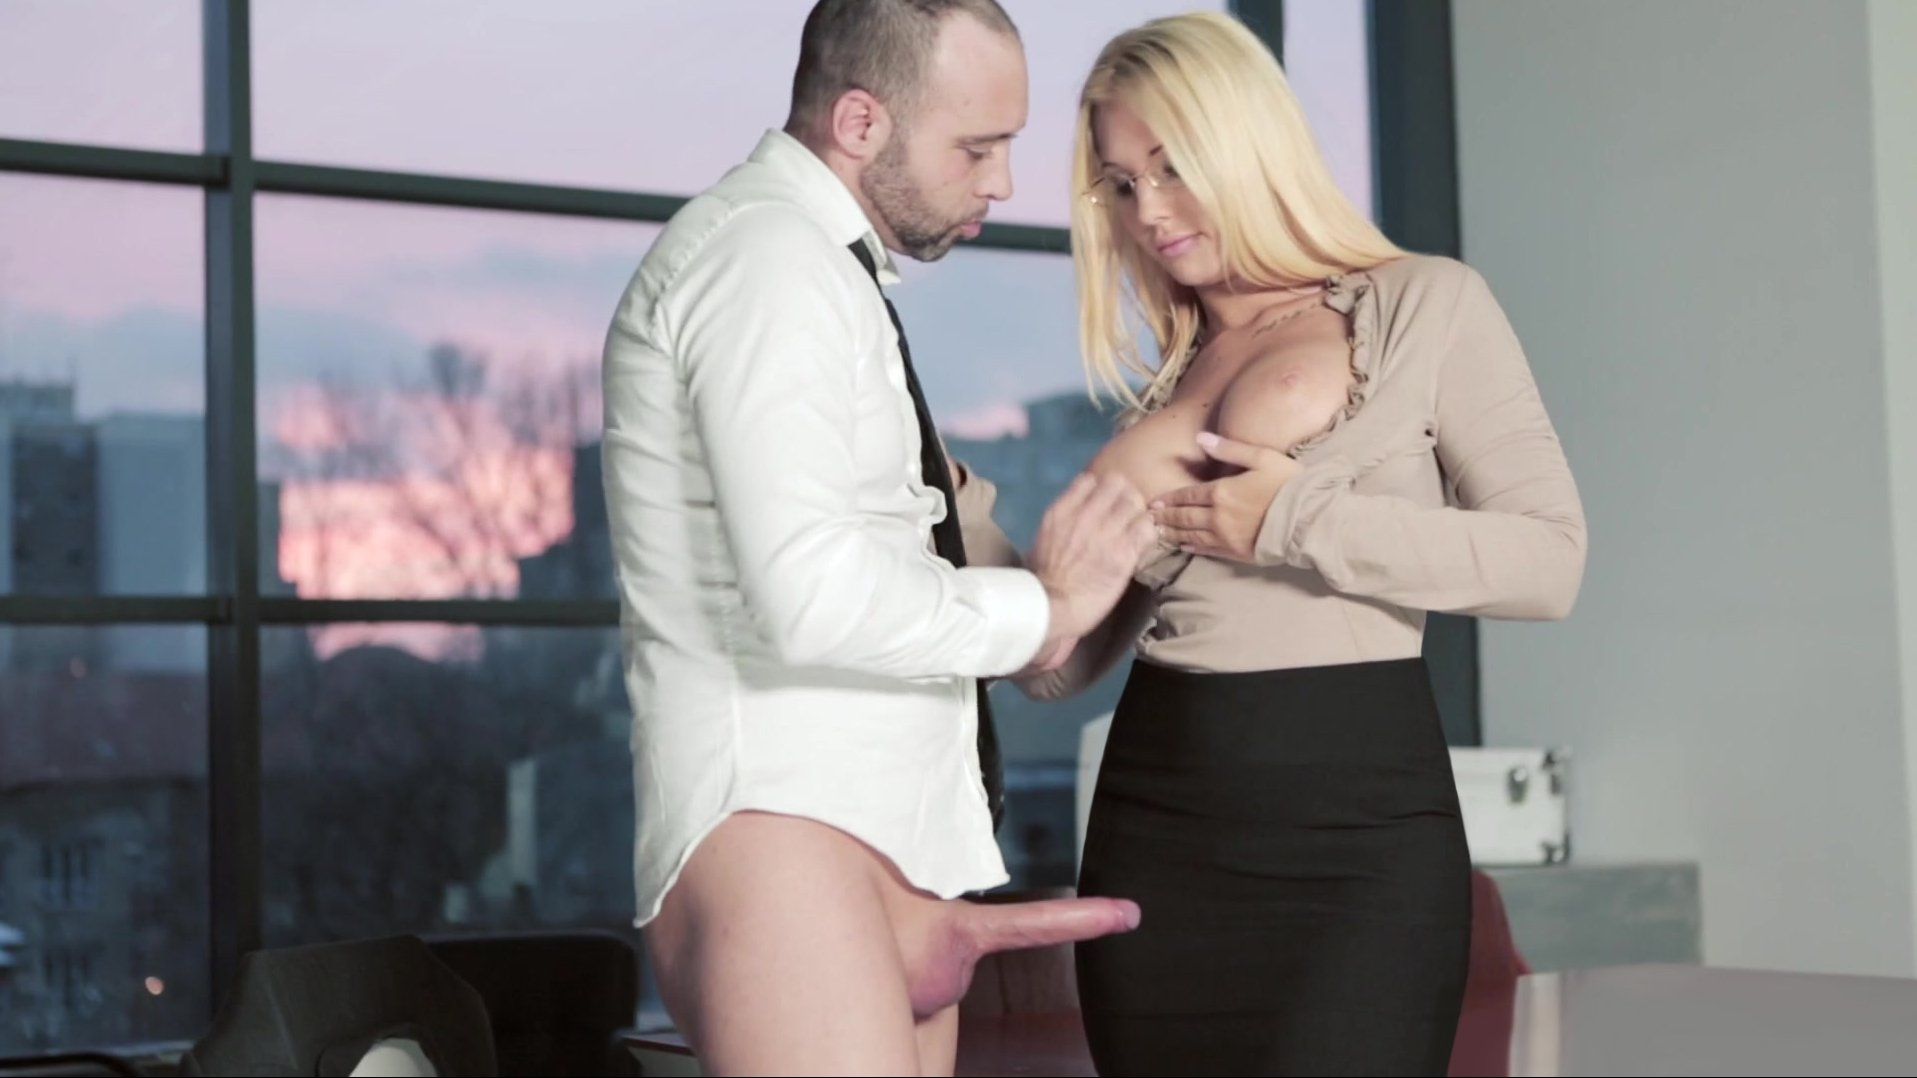 Kyra hot called pablo to fix the printer - 3 part 8